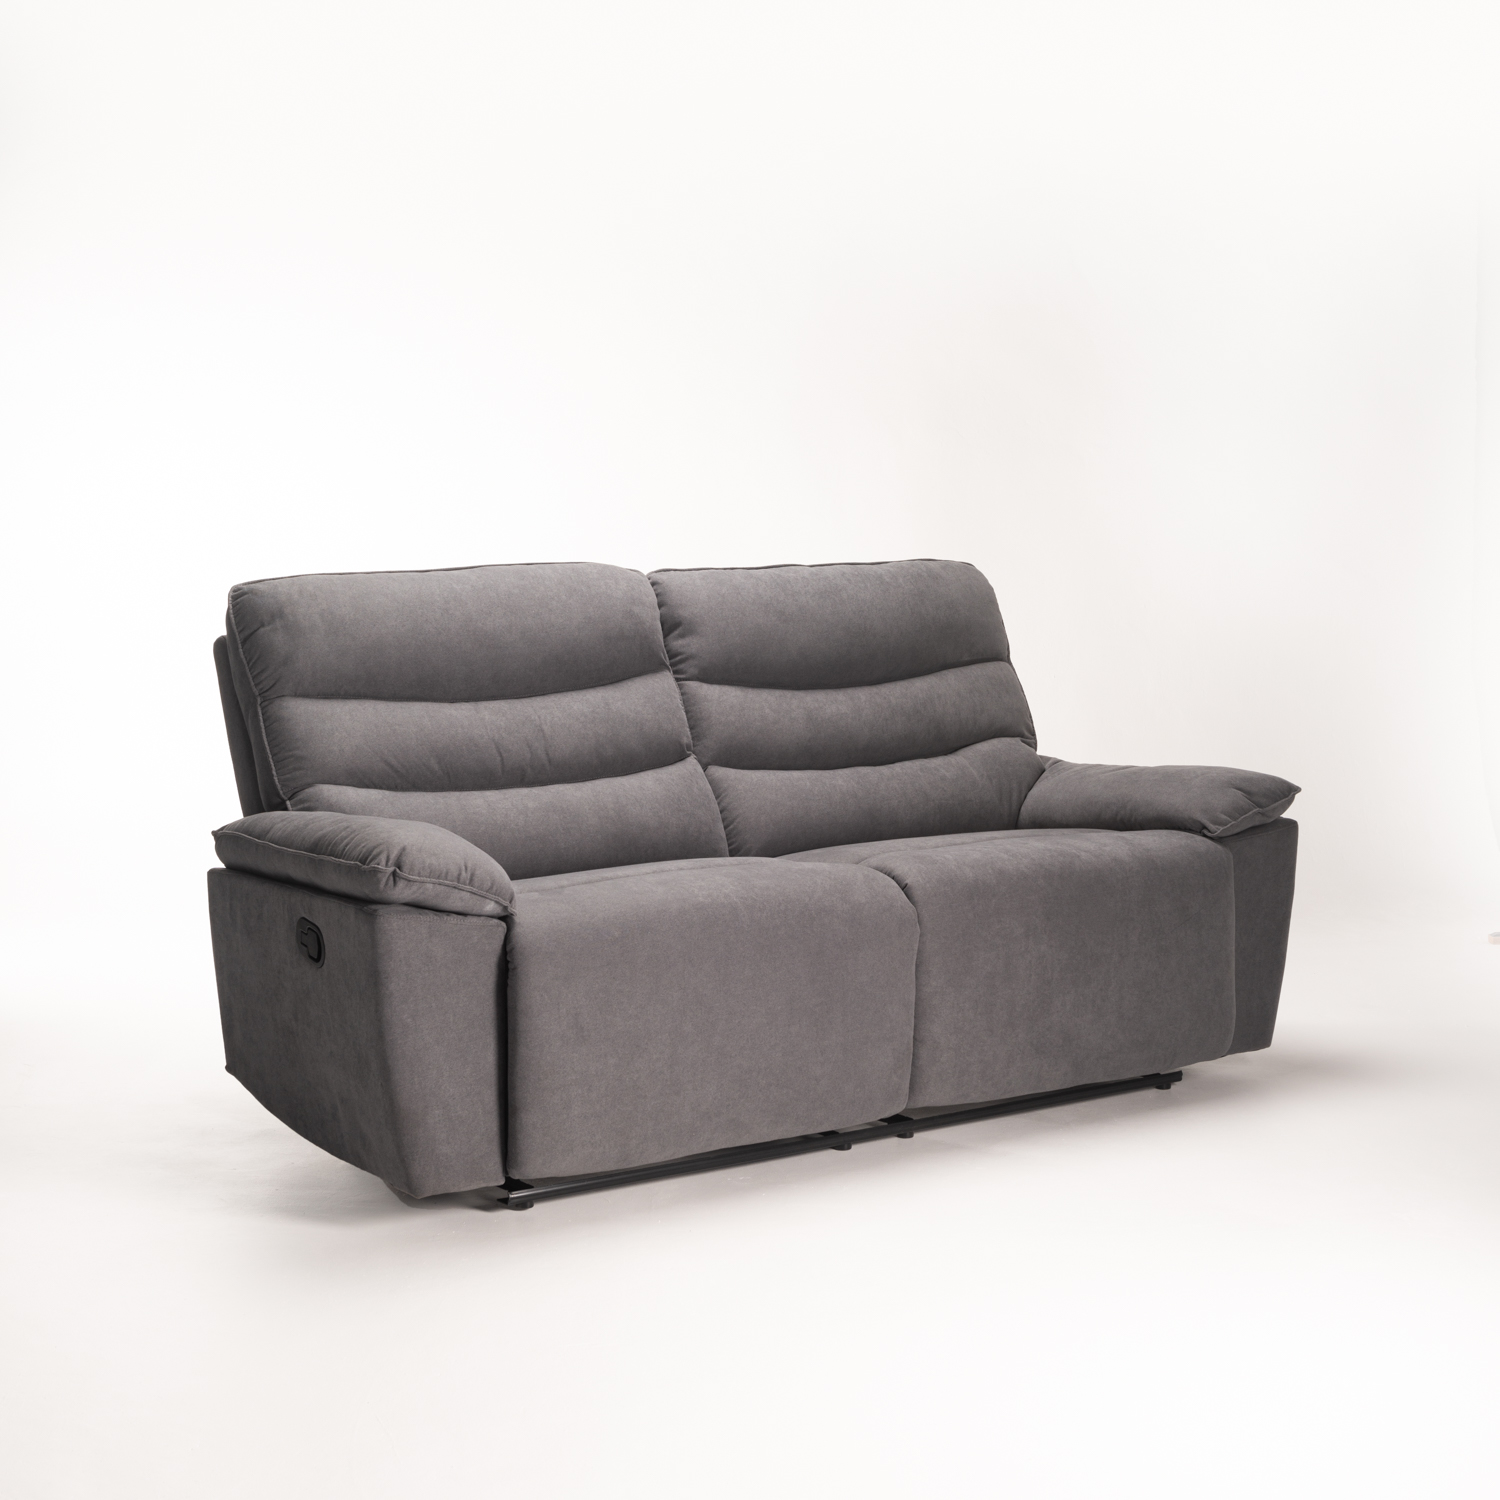 PORTO FABRIC 3 SEATER RECLINER